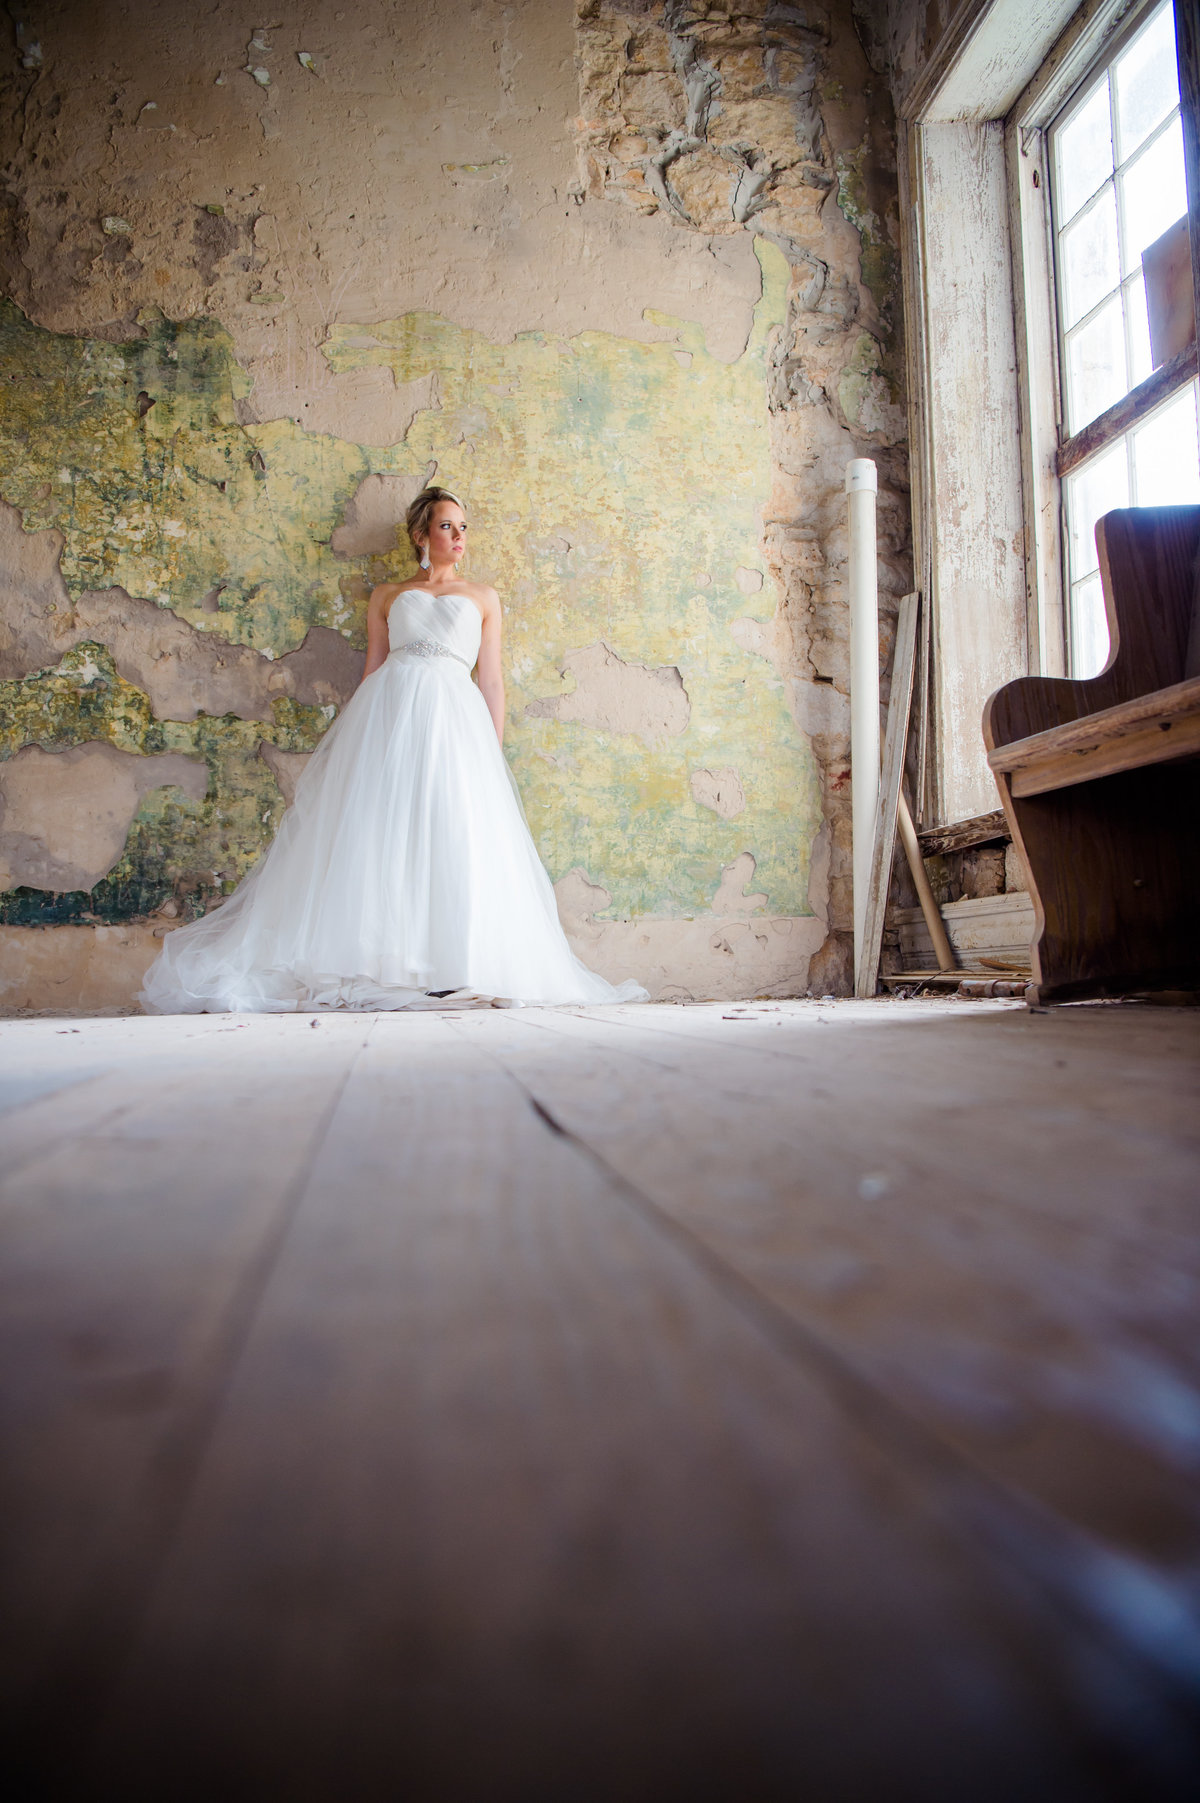 Bridal photo in run down house by Brittany Barclay Photography